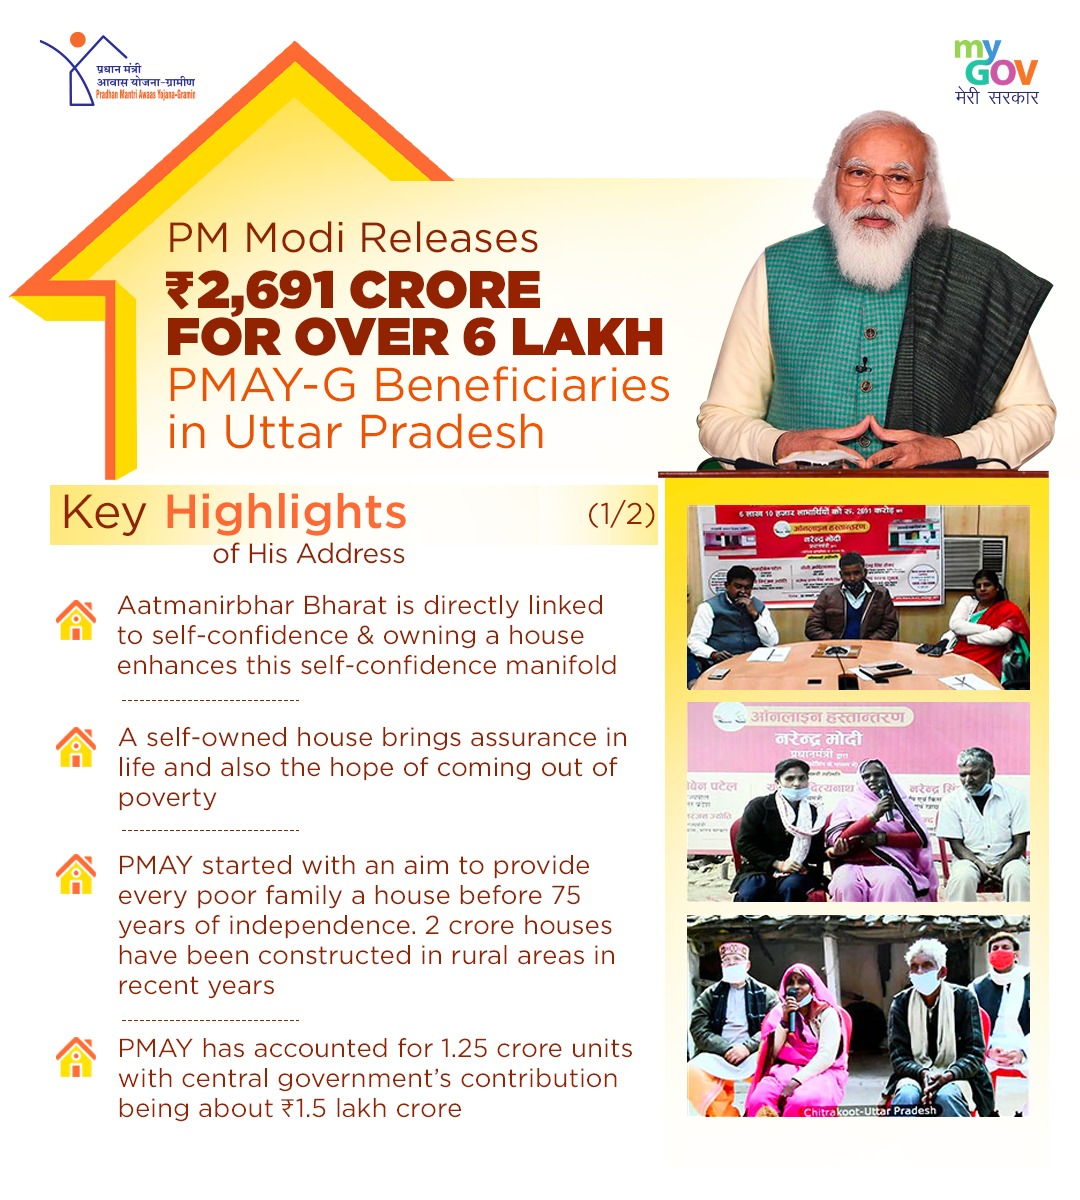 PM @narendramodi released Rs. 2,691 Crore for over 6 lakh PMAY-Gramin beneficiaries in Uttar Pradesh yesterday. Here are the key highlights from his address at the event. #GraminAwaasSabkePaas